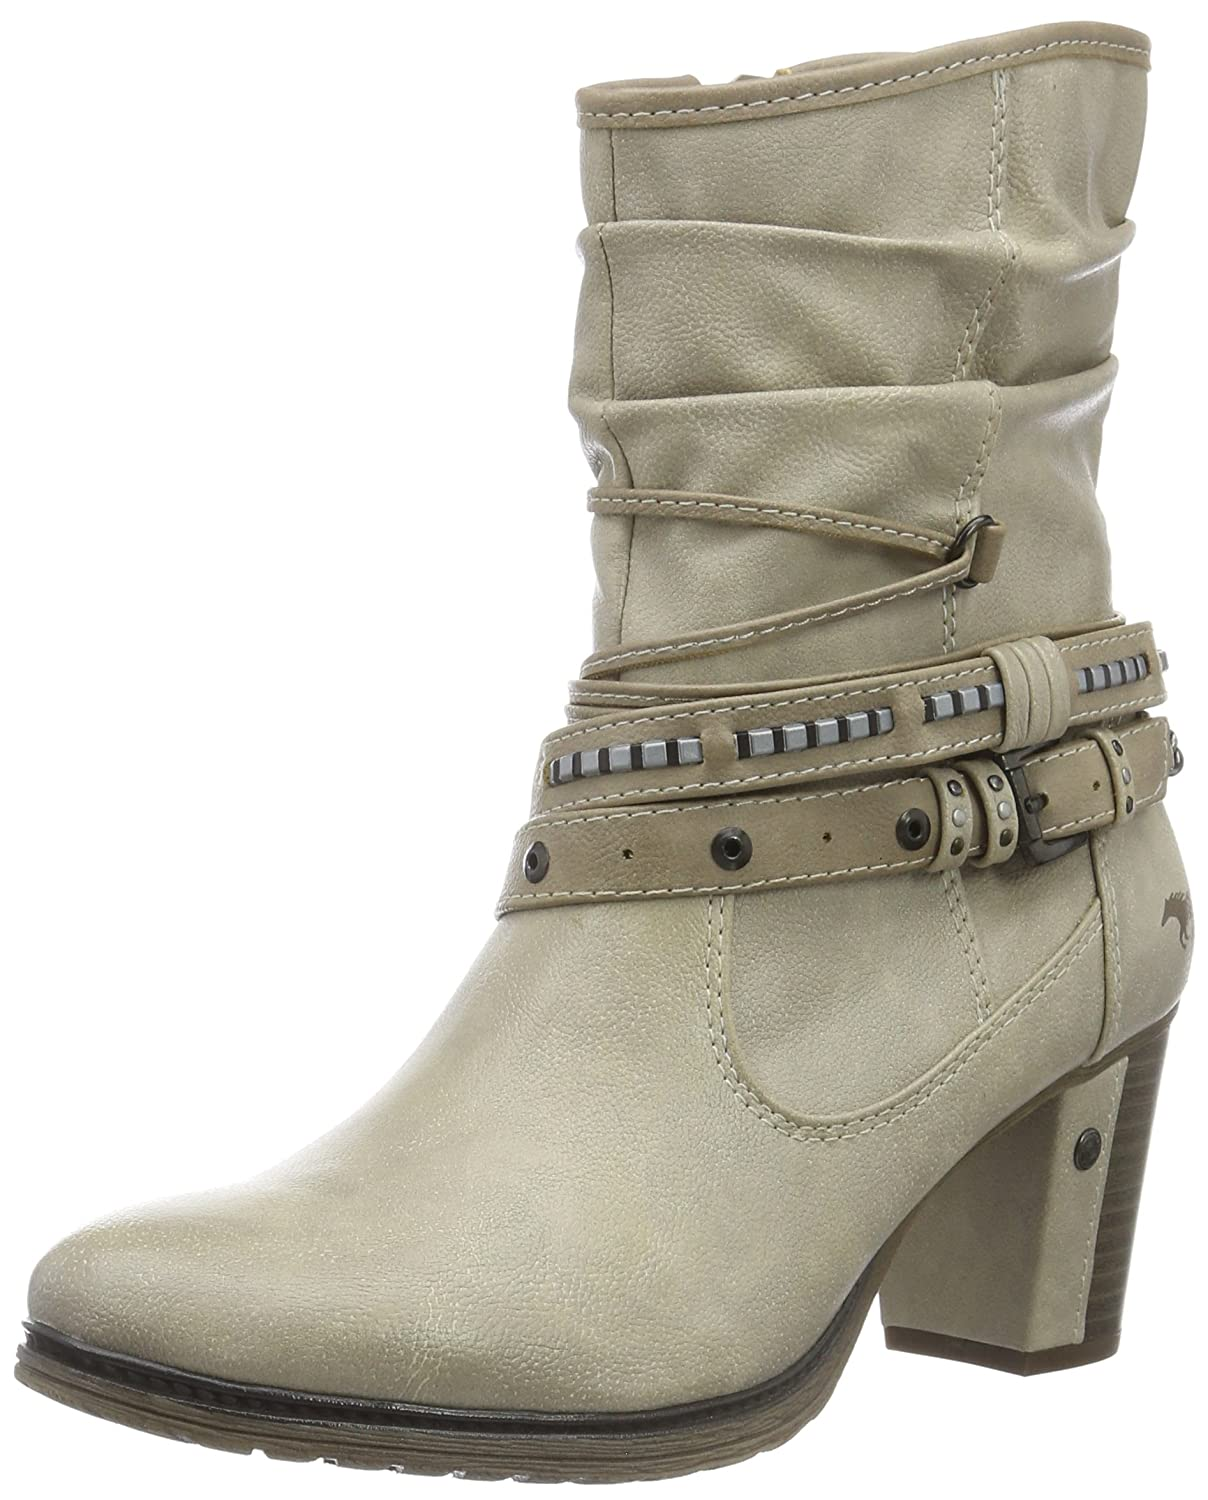 Mustang Women's 1199 504 243 Ankle Boots, Off White (243